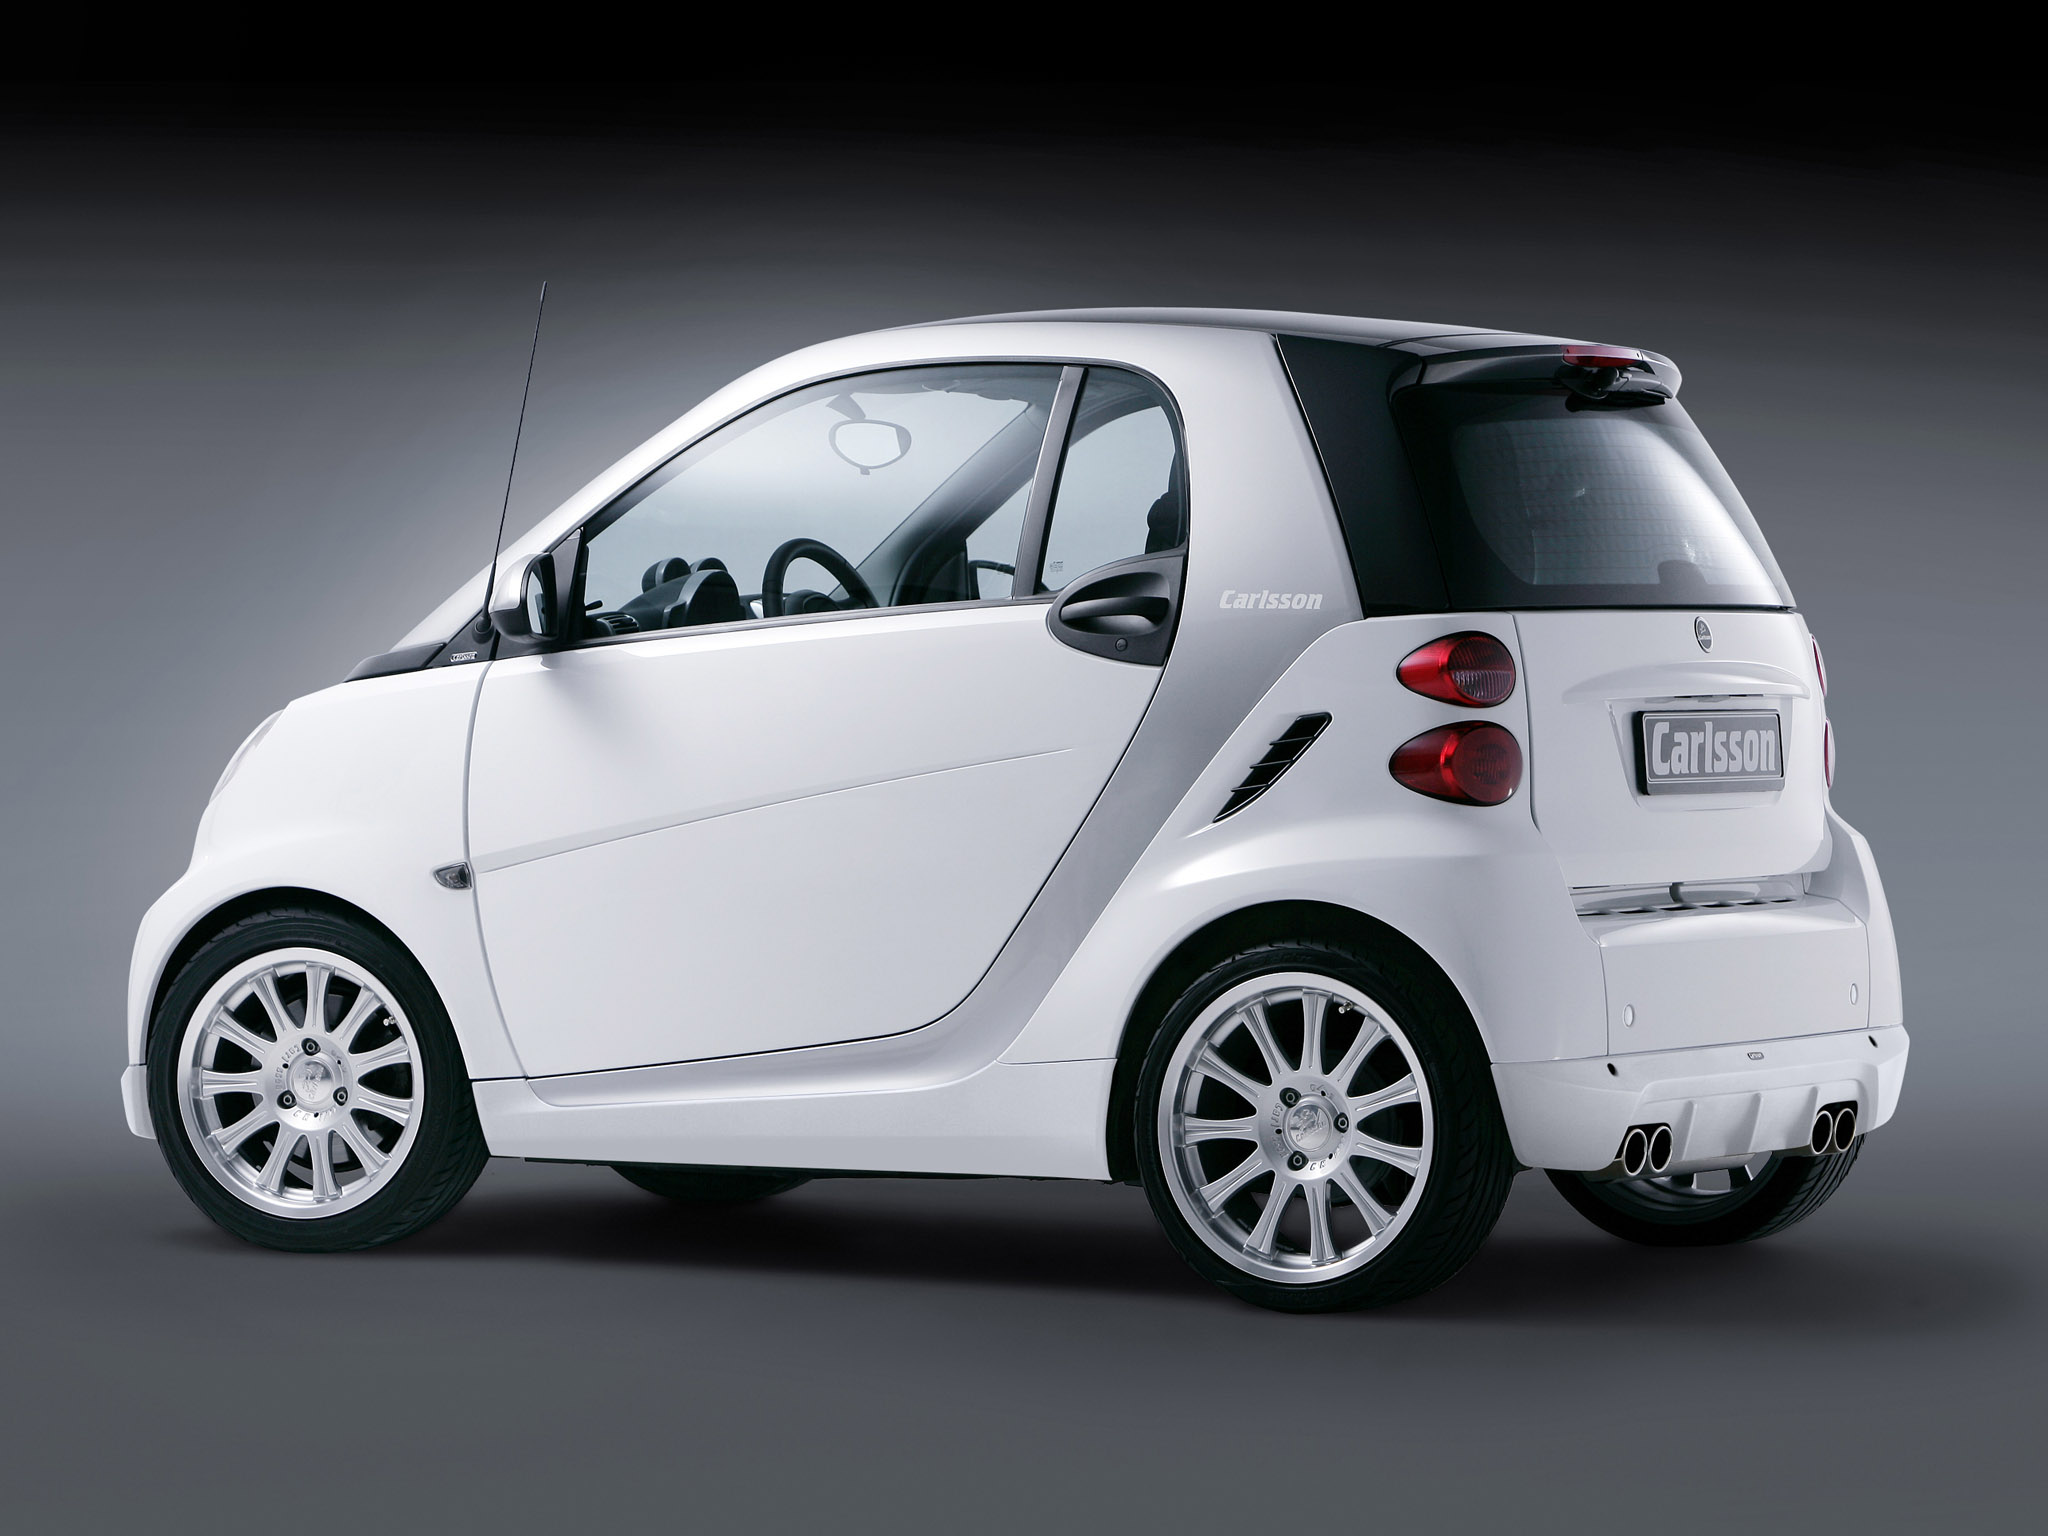 carlsson smart fortwo 2007 carlsson smart fortwo 2007 photo 11 car in pictures car photo gallery